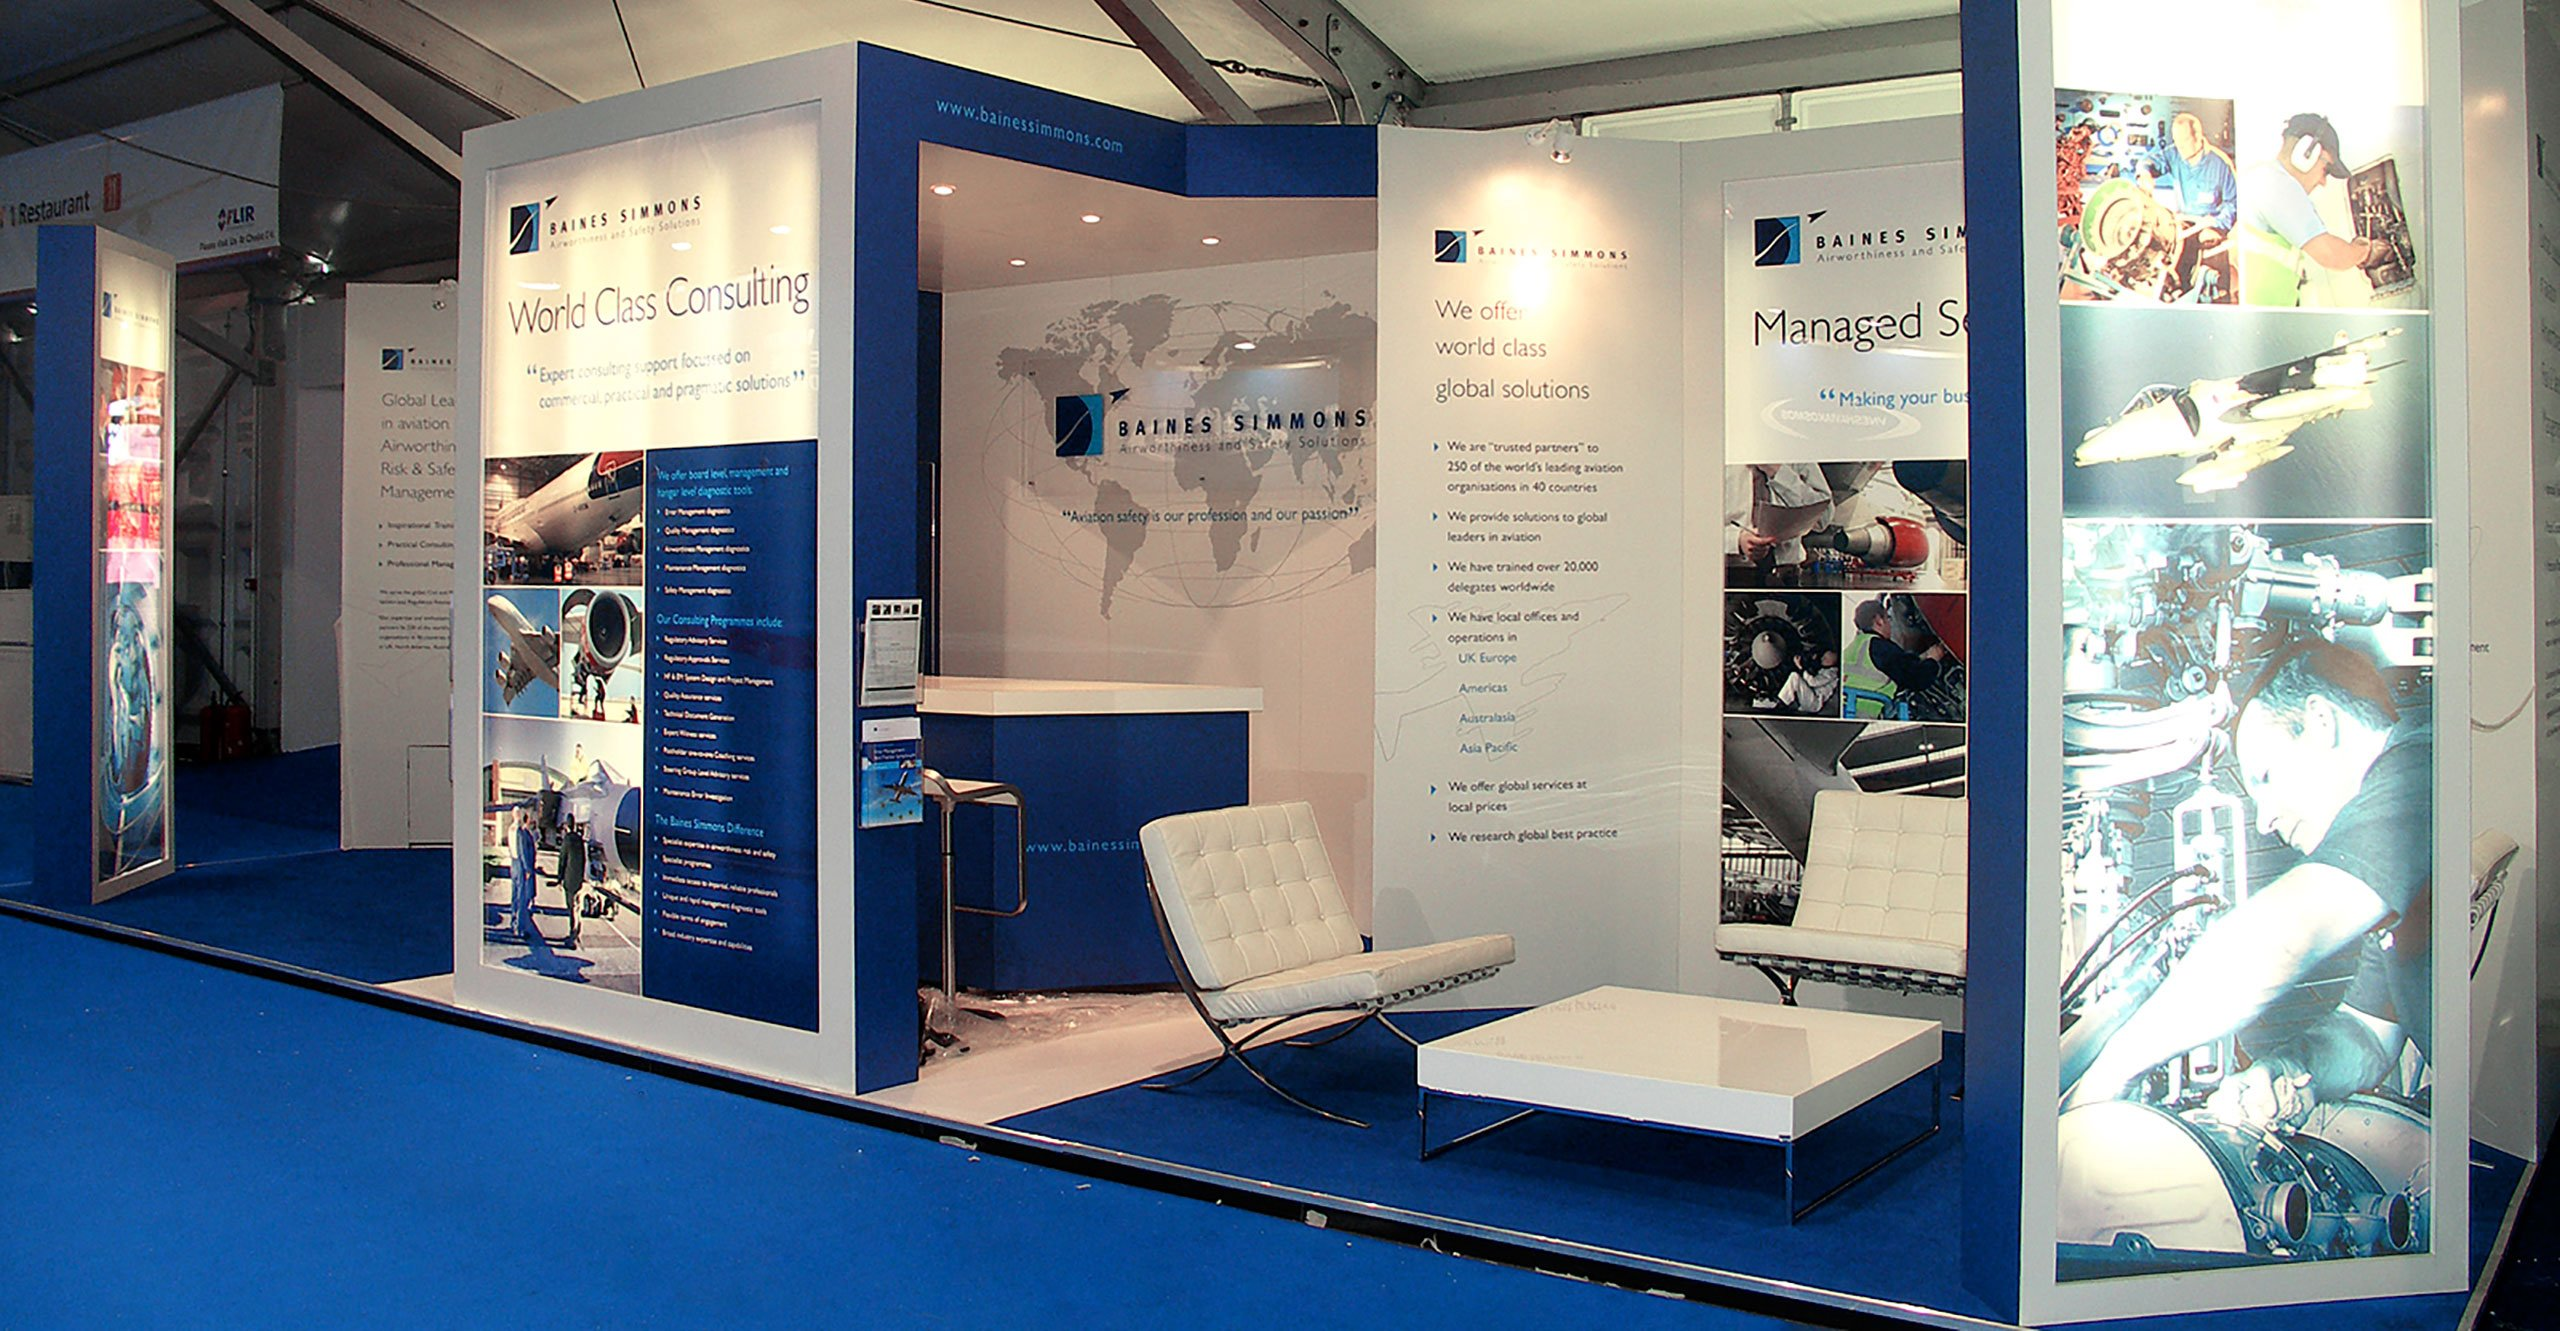 Exhibition Stand Design - Baines Simmons